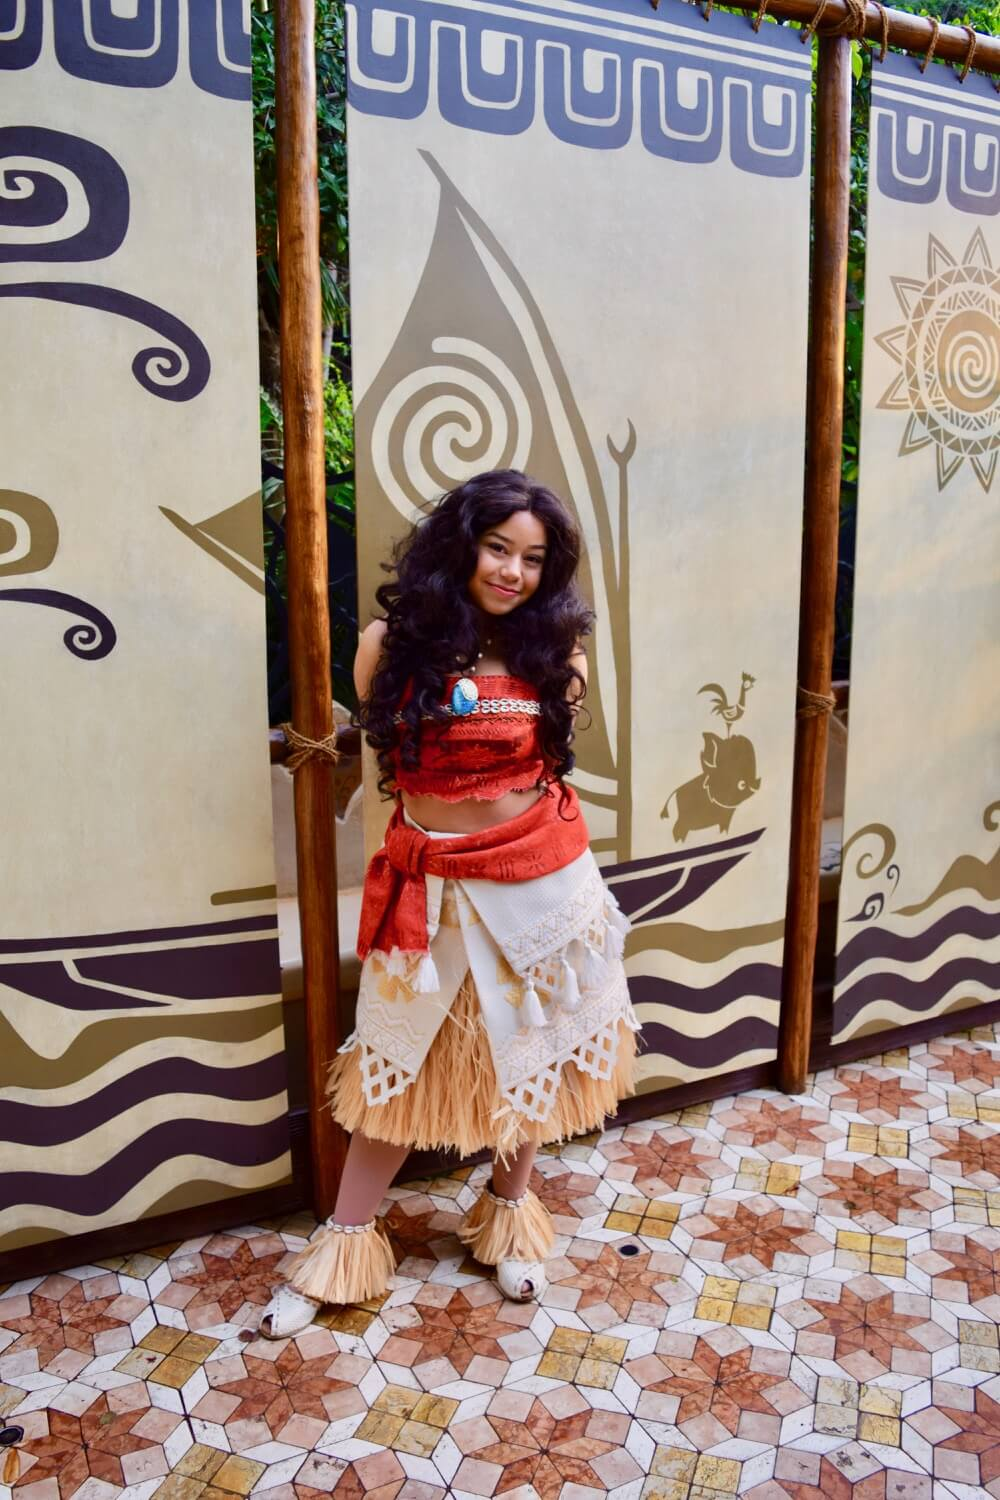 Disneyland Characters - Moana in Adventureland